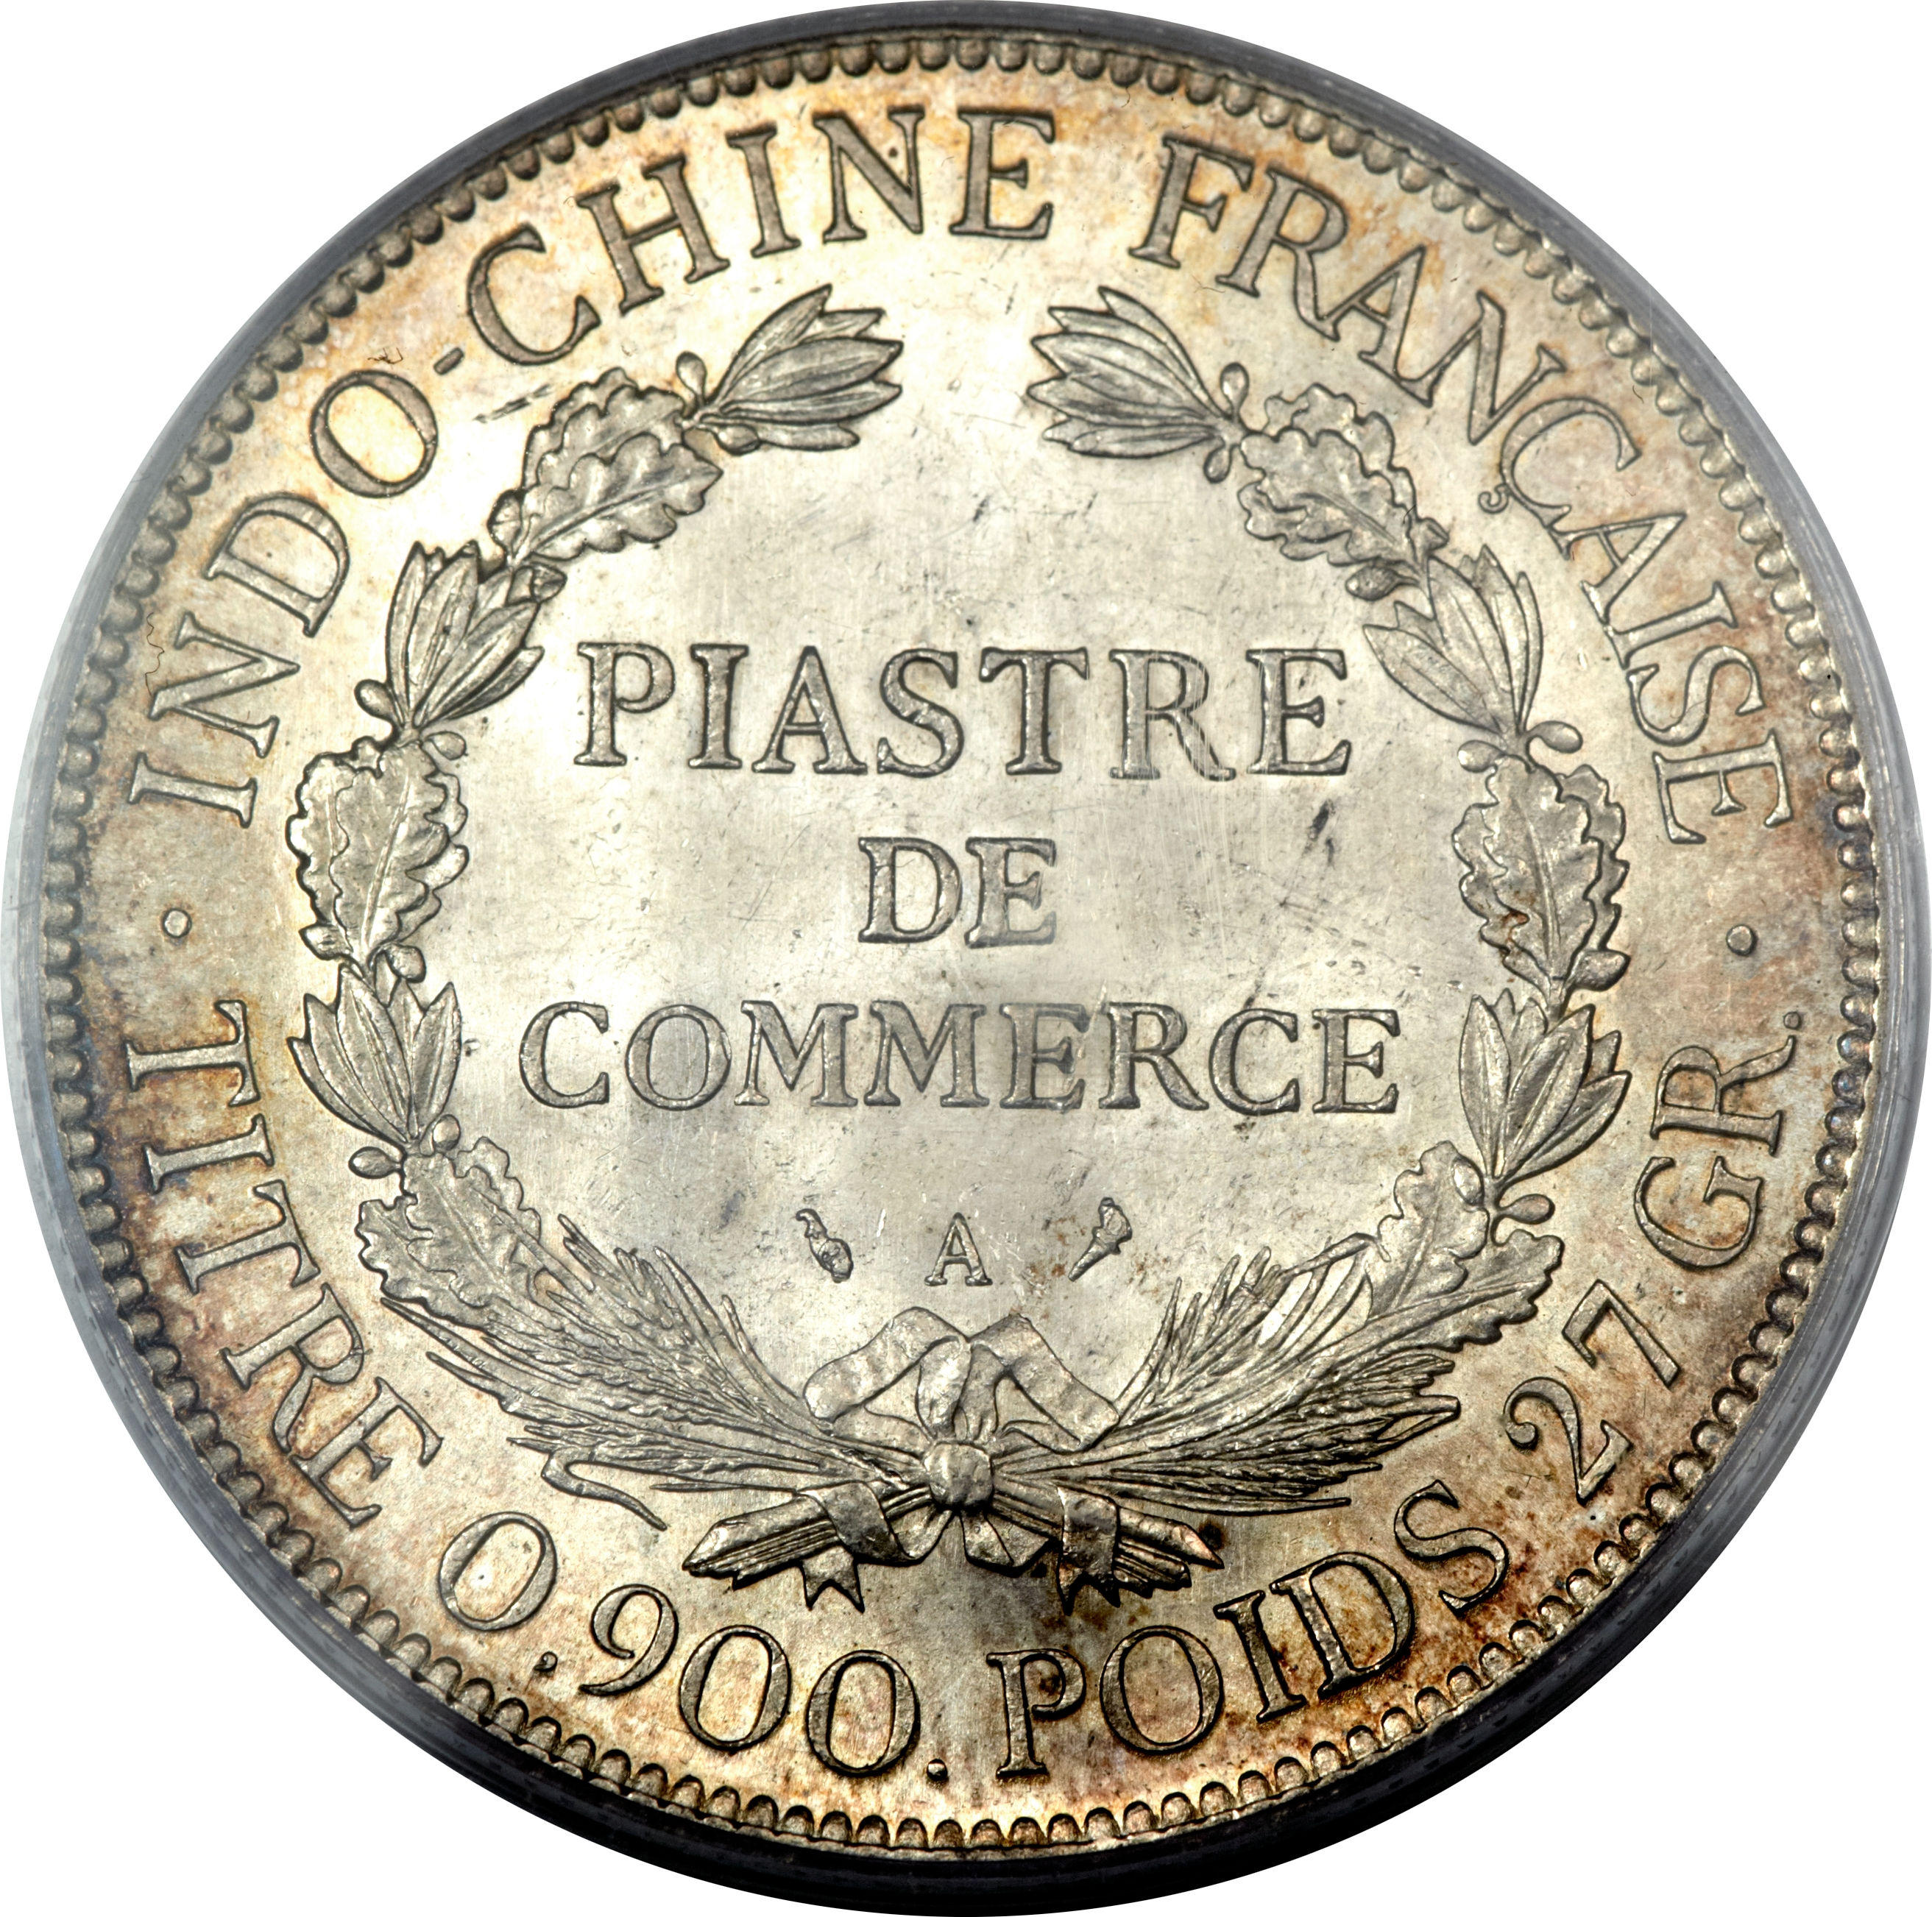 c28c41c63d 1 Piastre - French Indochina – Numista